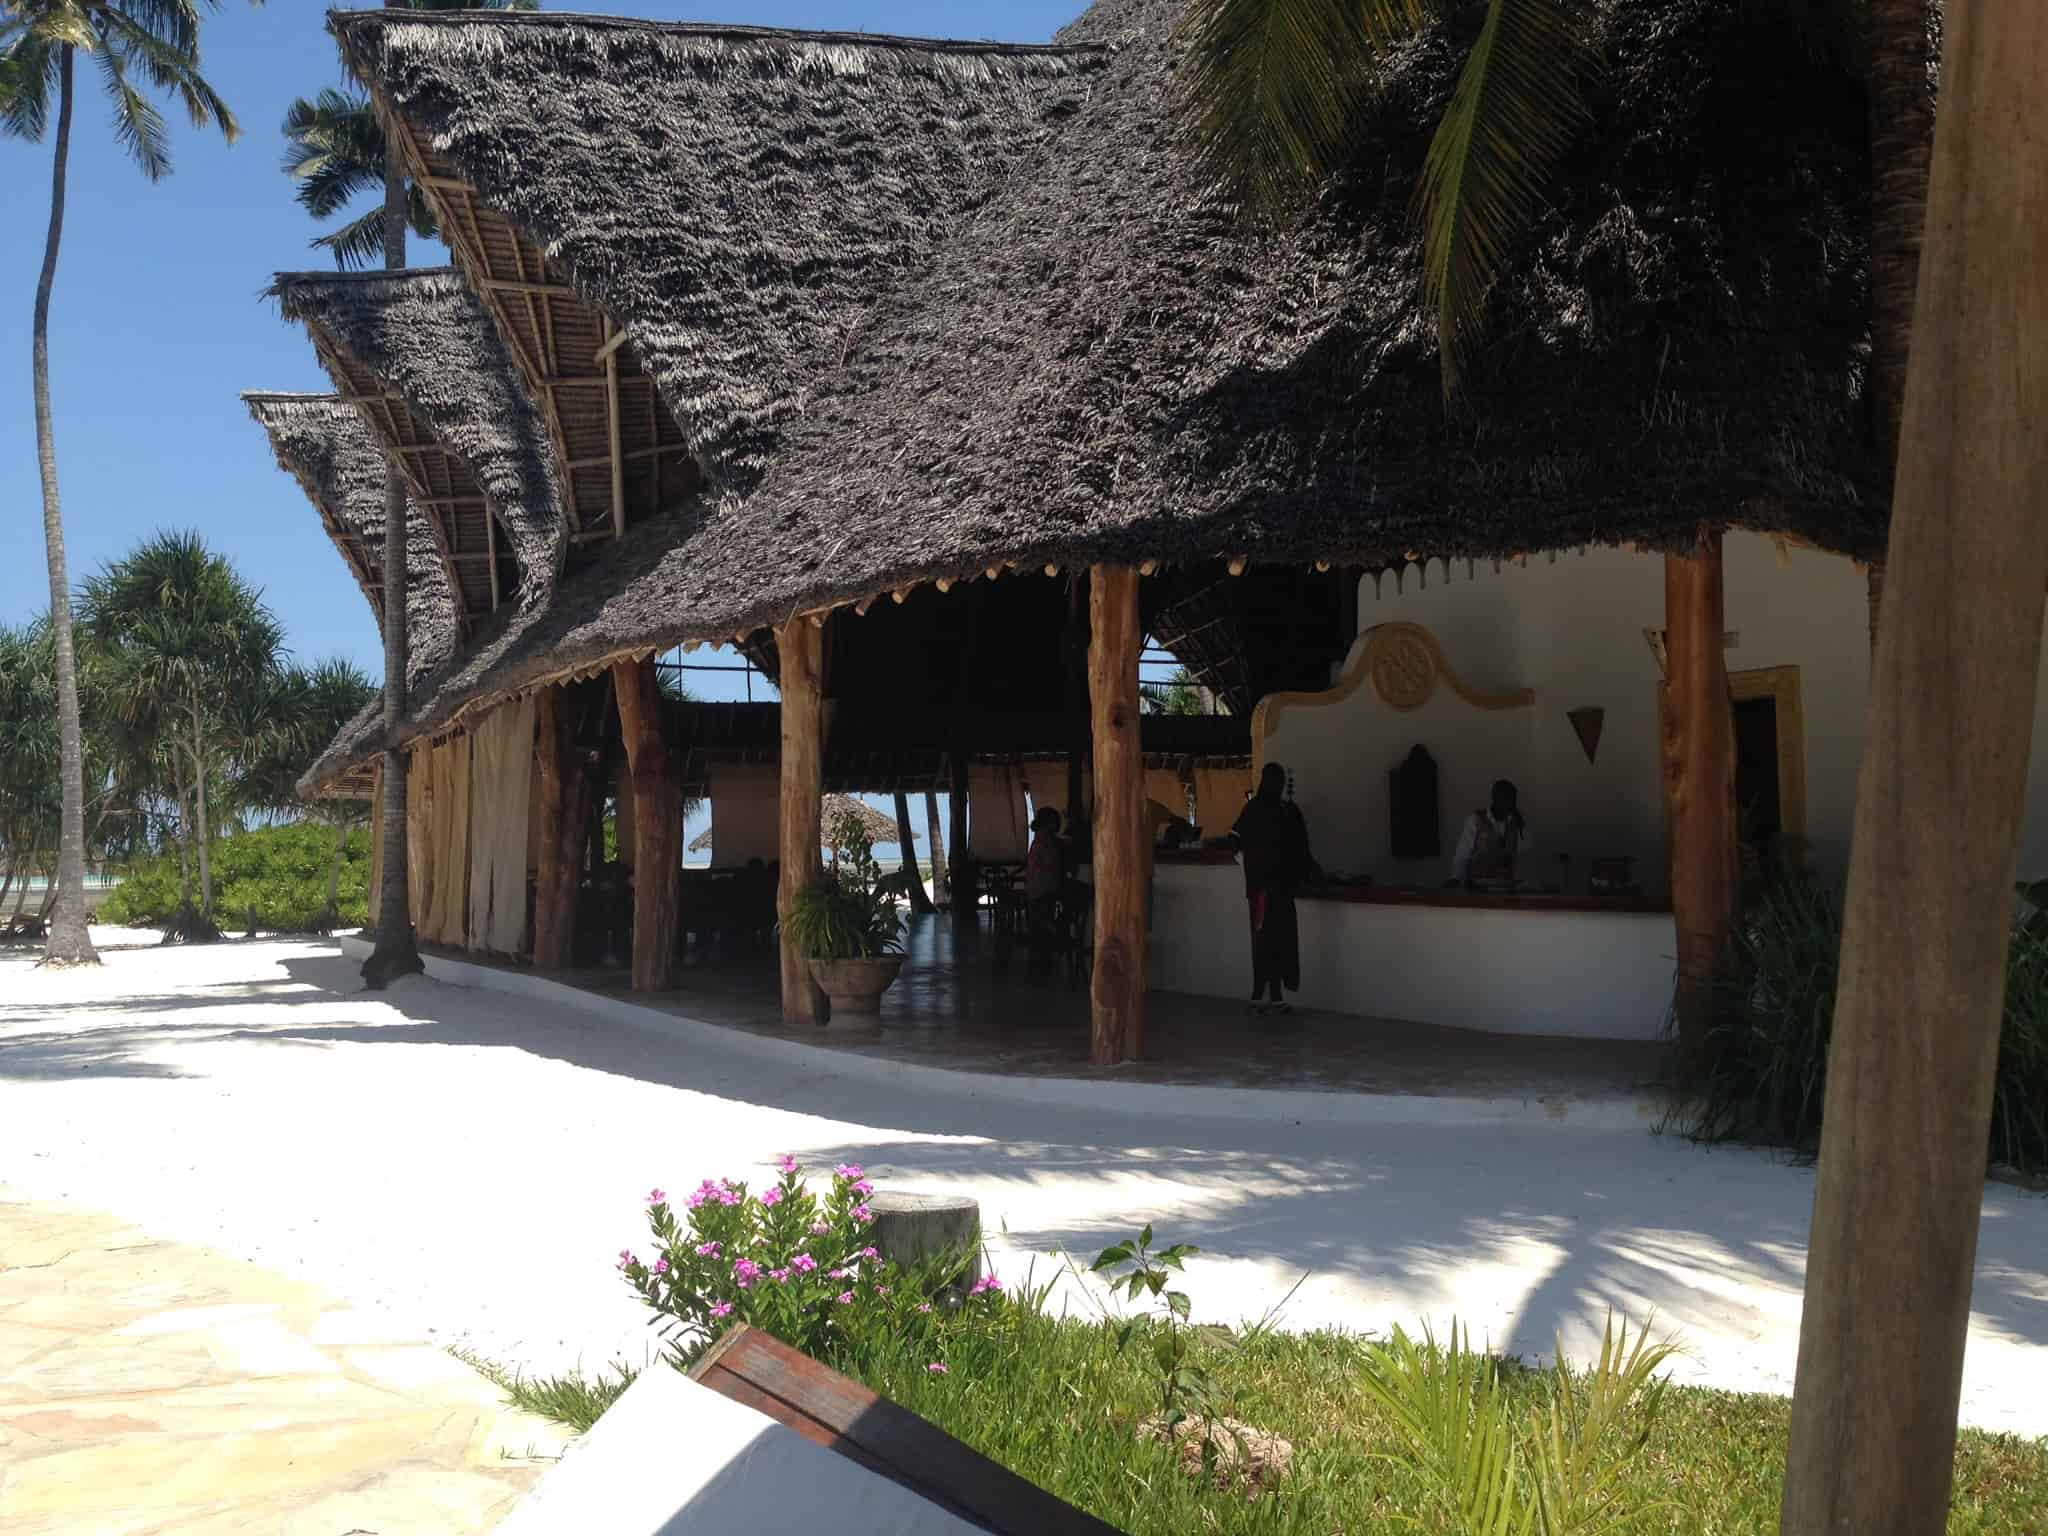 Pongwe bay reception znz